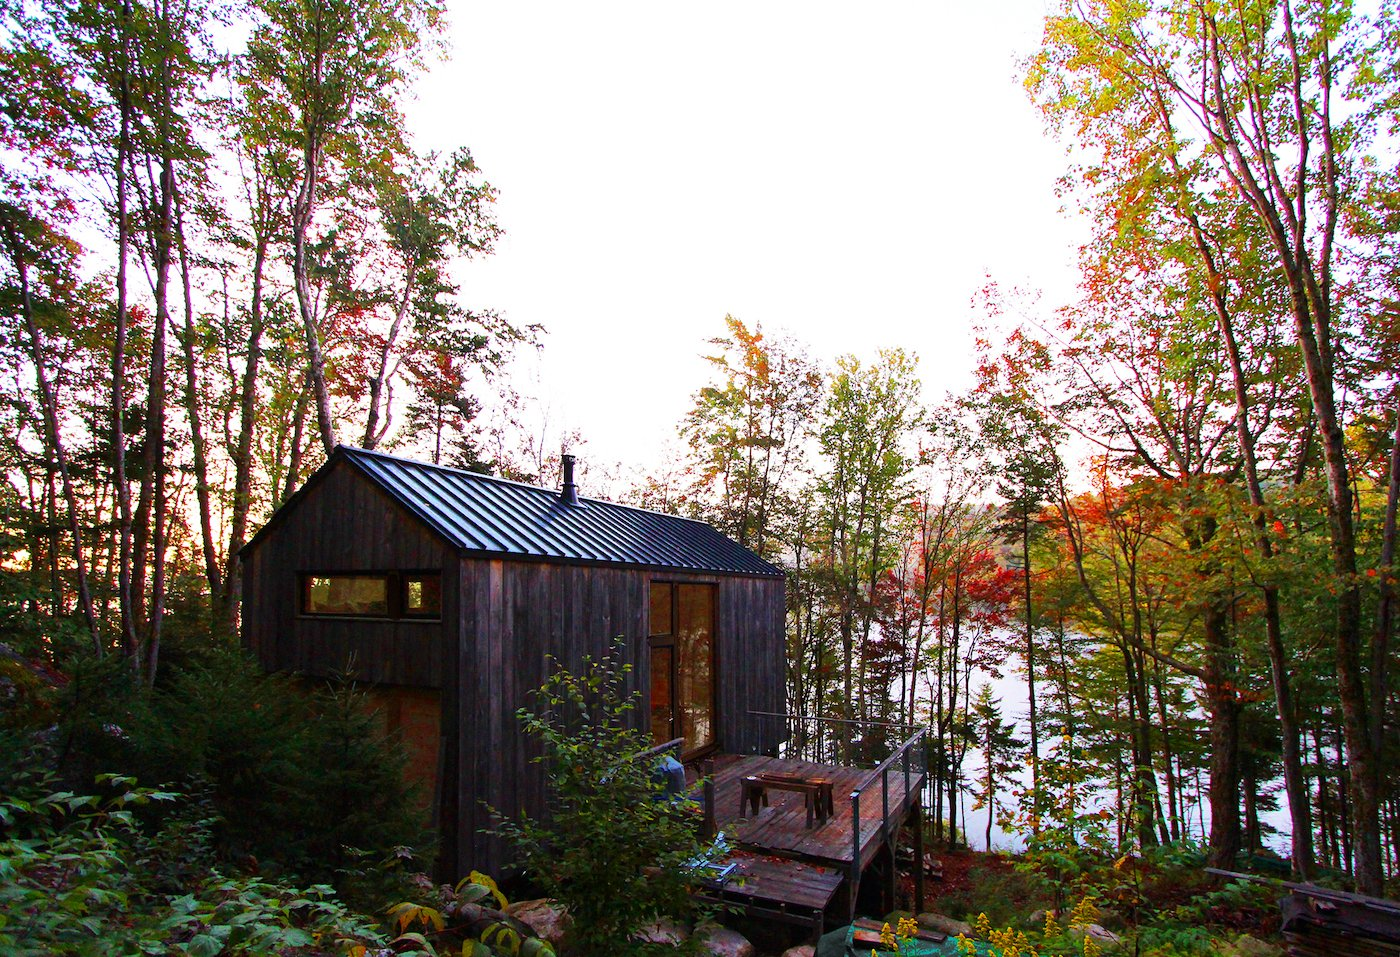 View of lake and woods surrounding off-grid timber cabin